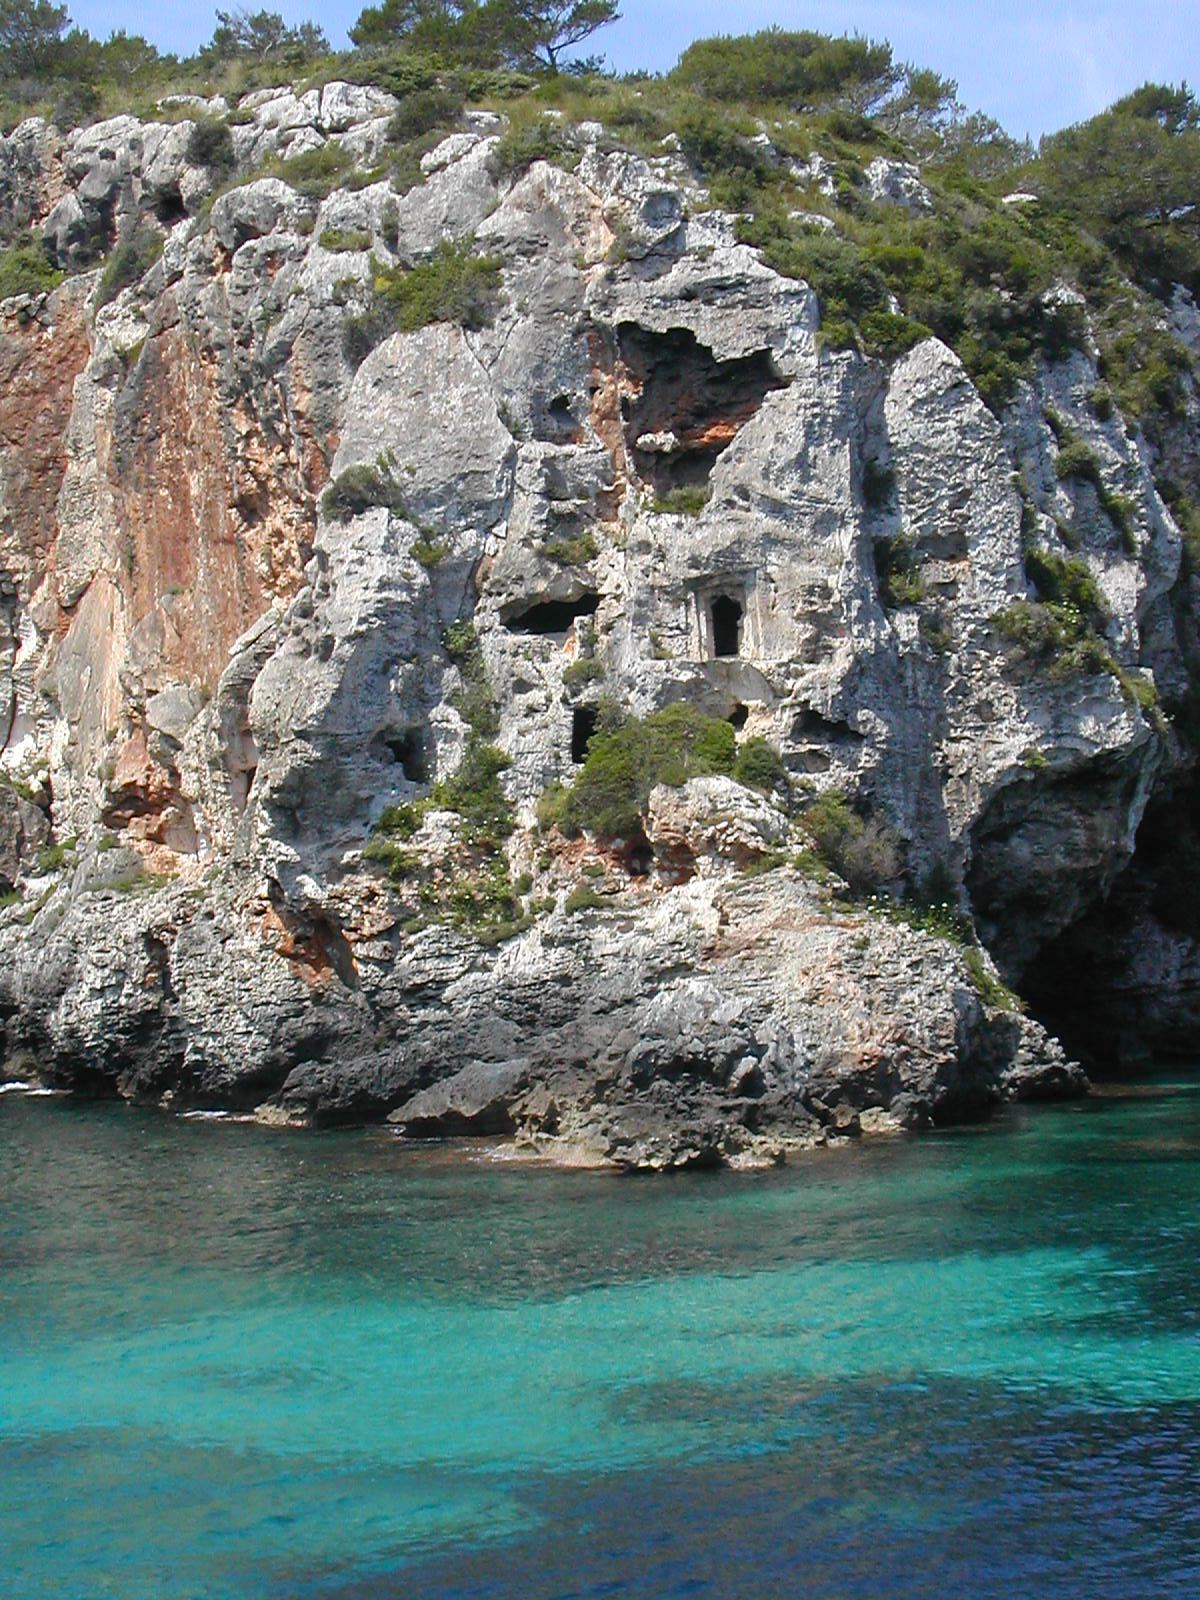 One of the stunning coves in Menorca